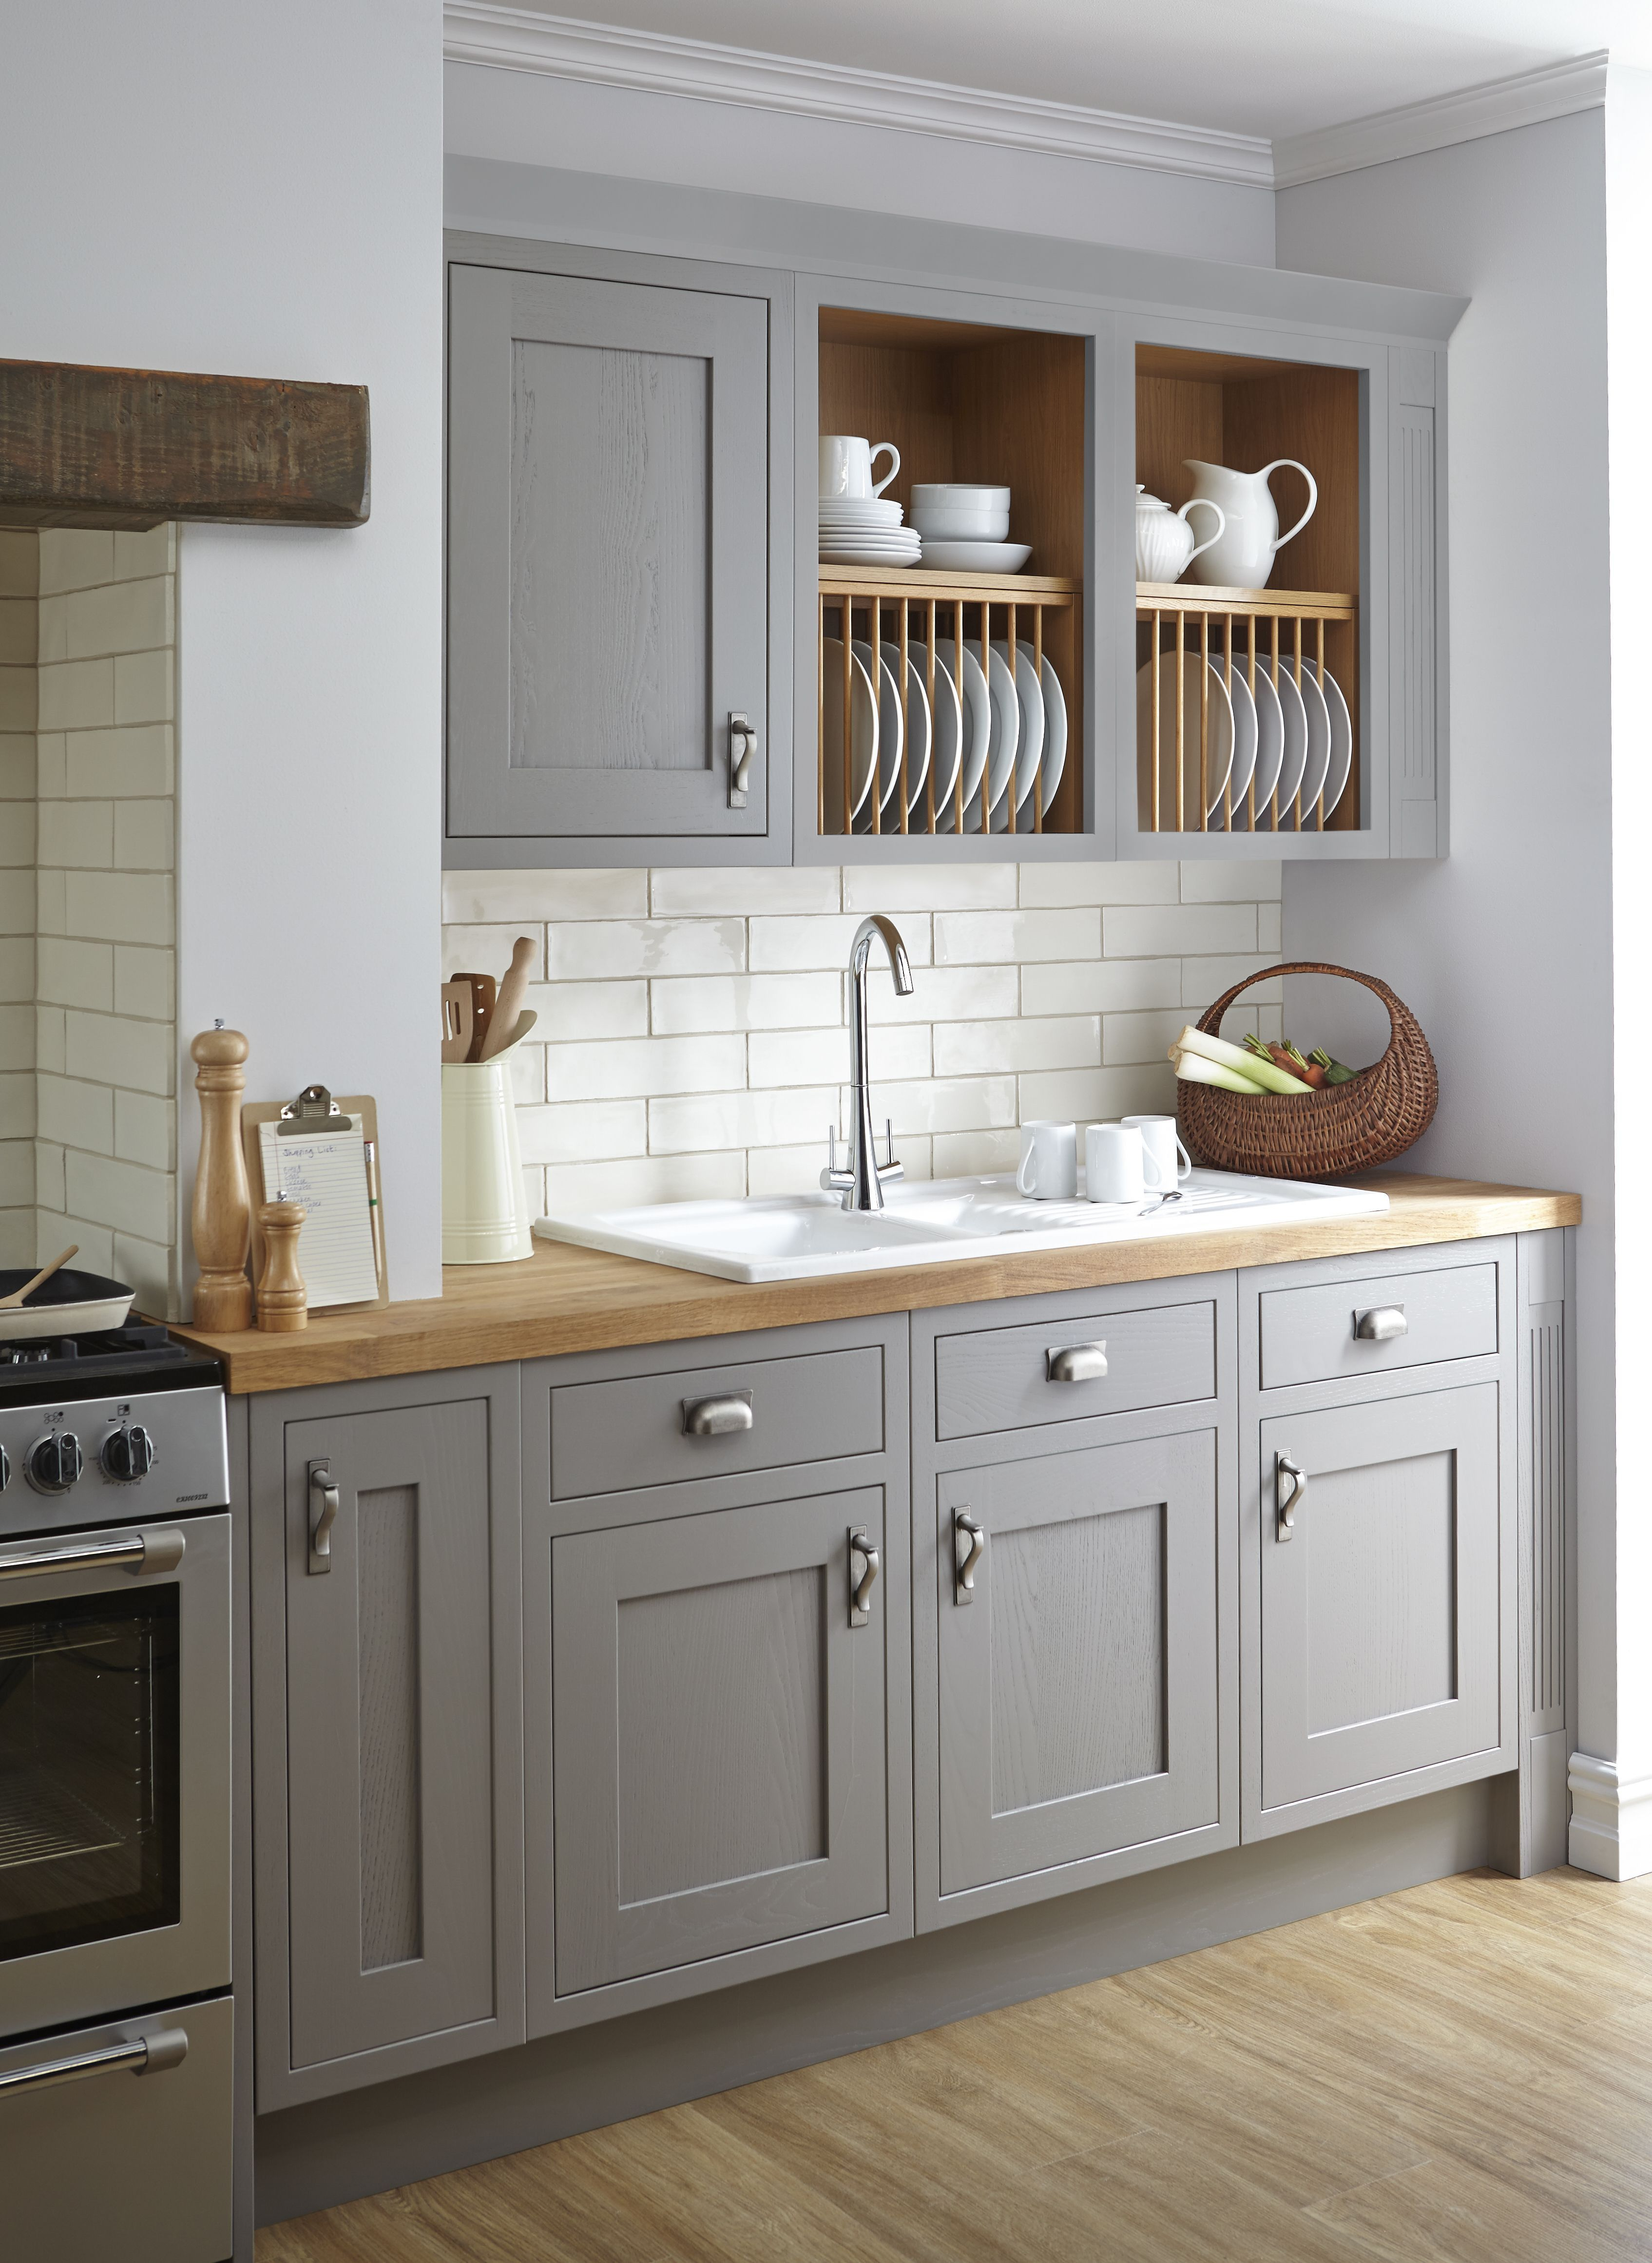 new painting kitchen cabinets greige the most amazing along with attractive painting kitchen on kitchen ideas cabinets id=95517